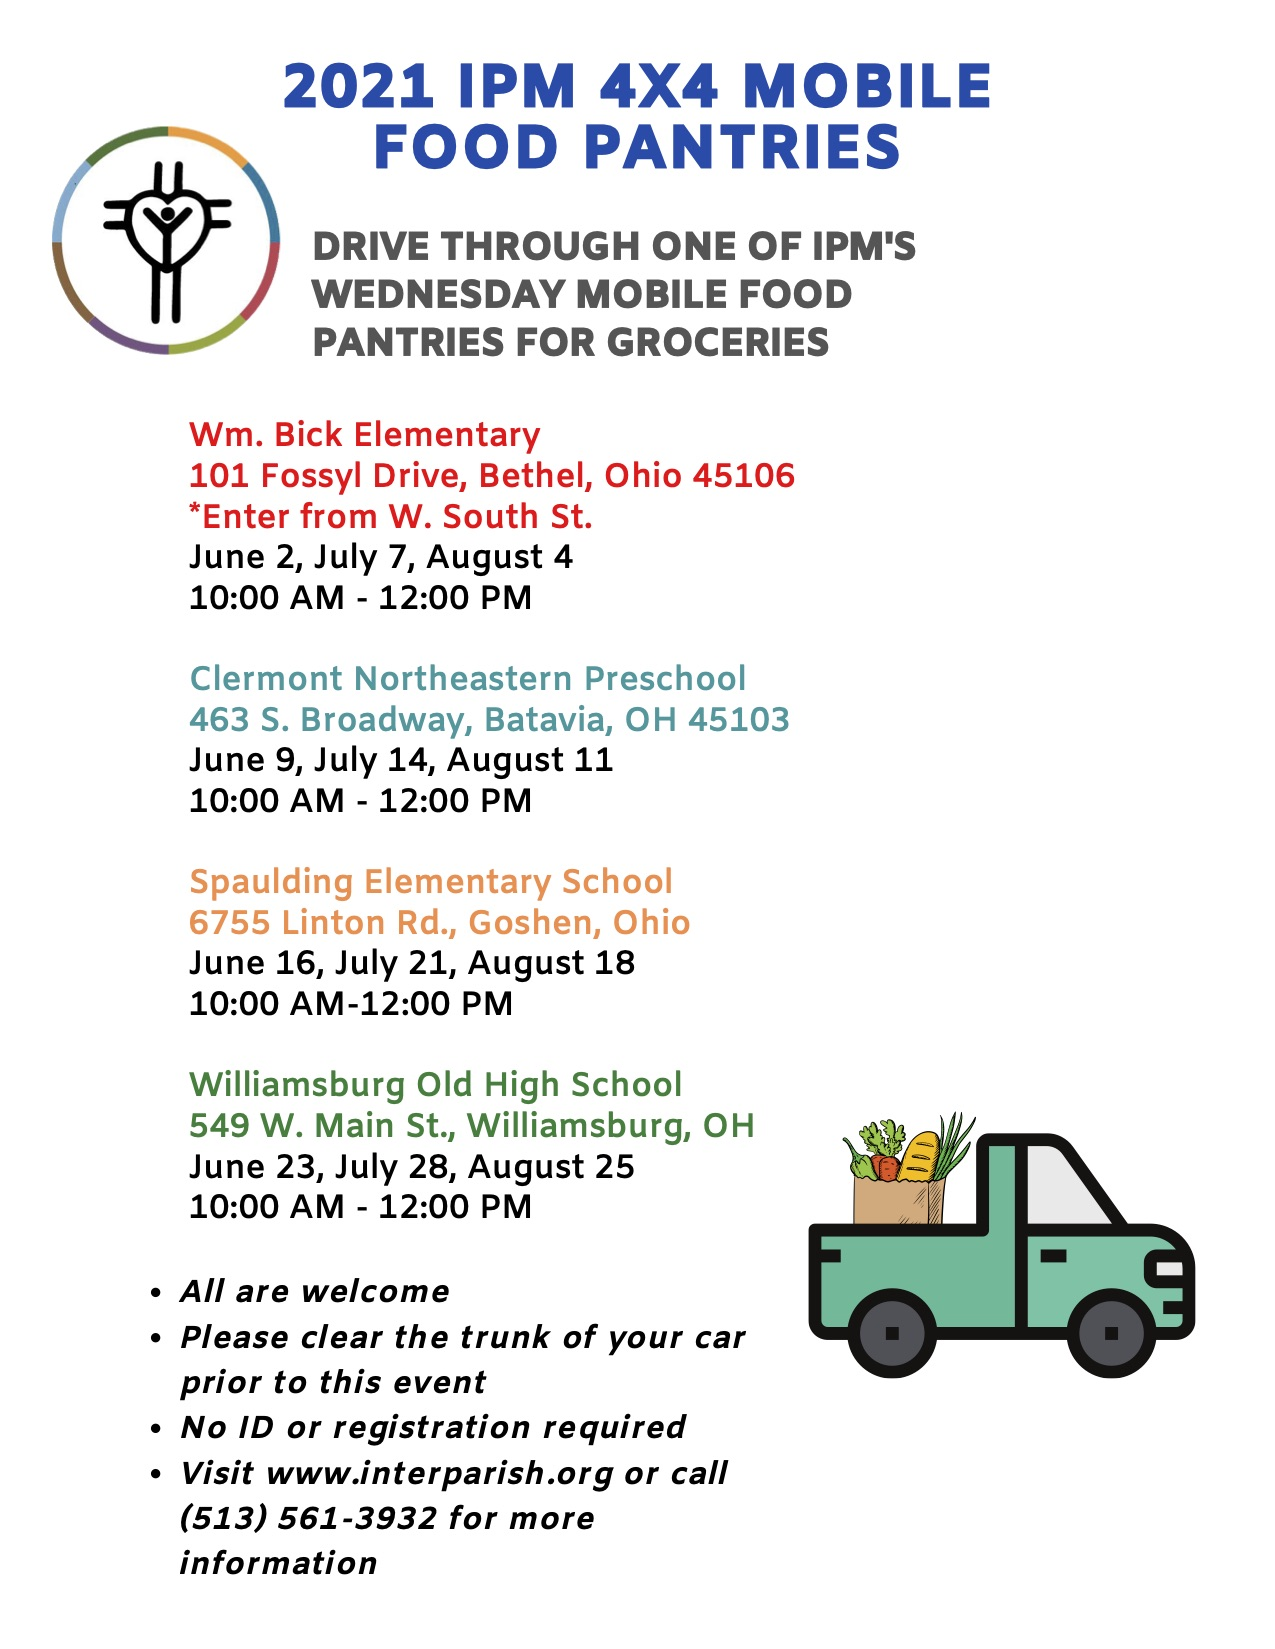 IPM summer food pantry wednesday pickup schedule with dates attached